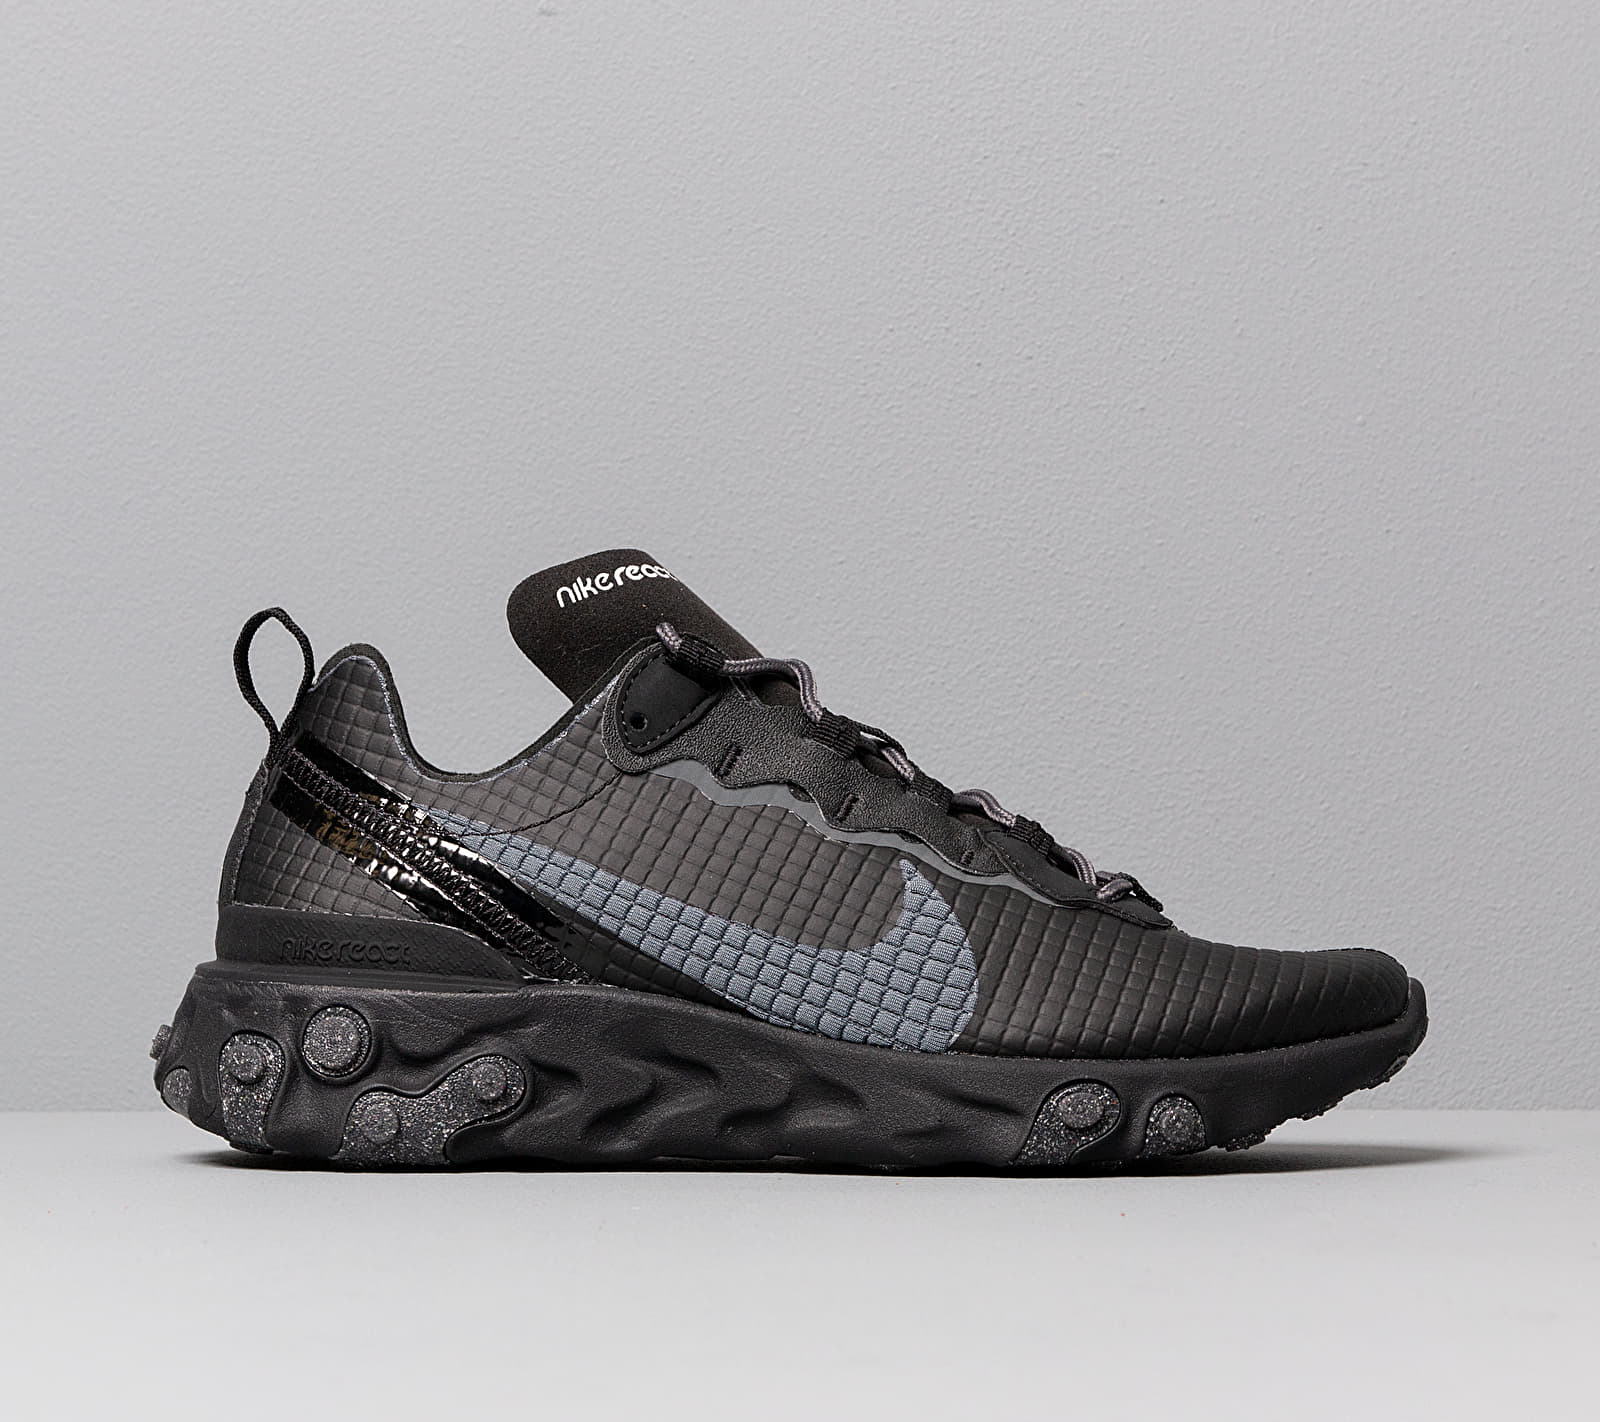 Nike React Element 55 Premium Black/ Dark Grey-Anthracite